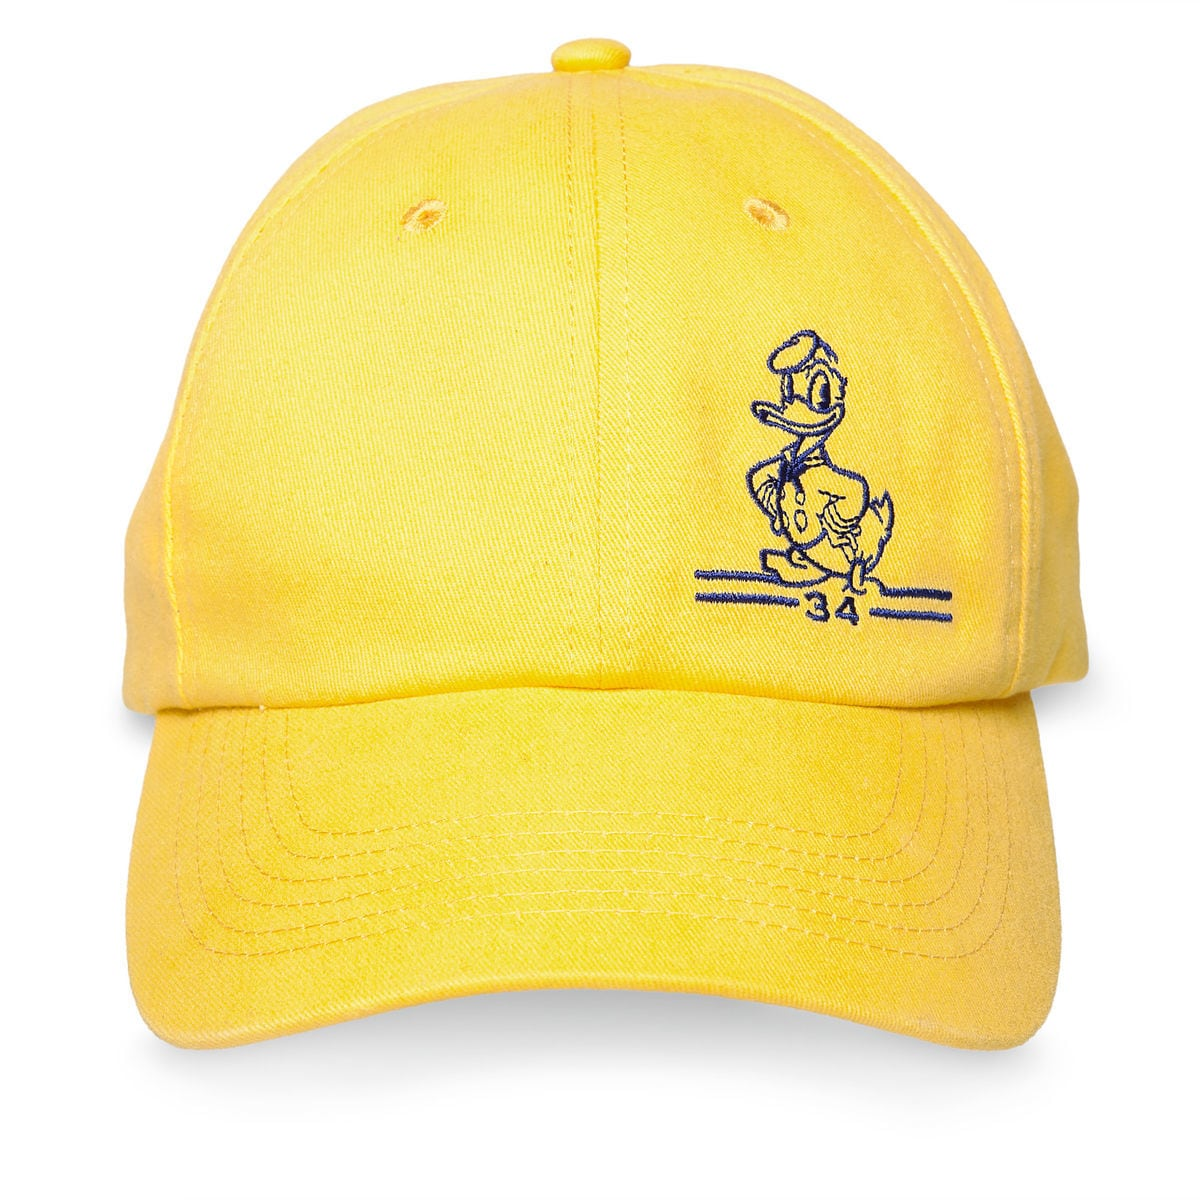 Product Image of Donald Duck Baseball Cap for Adults   1 d0bbee7b5ef